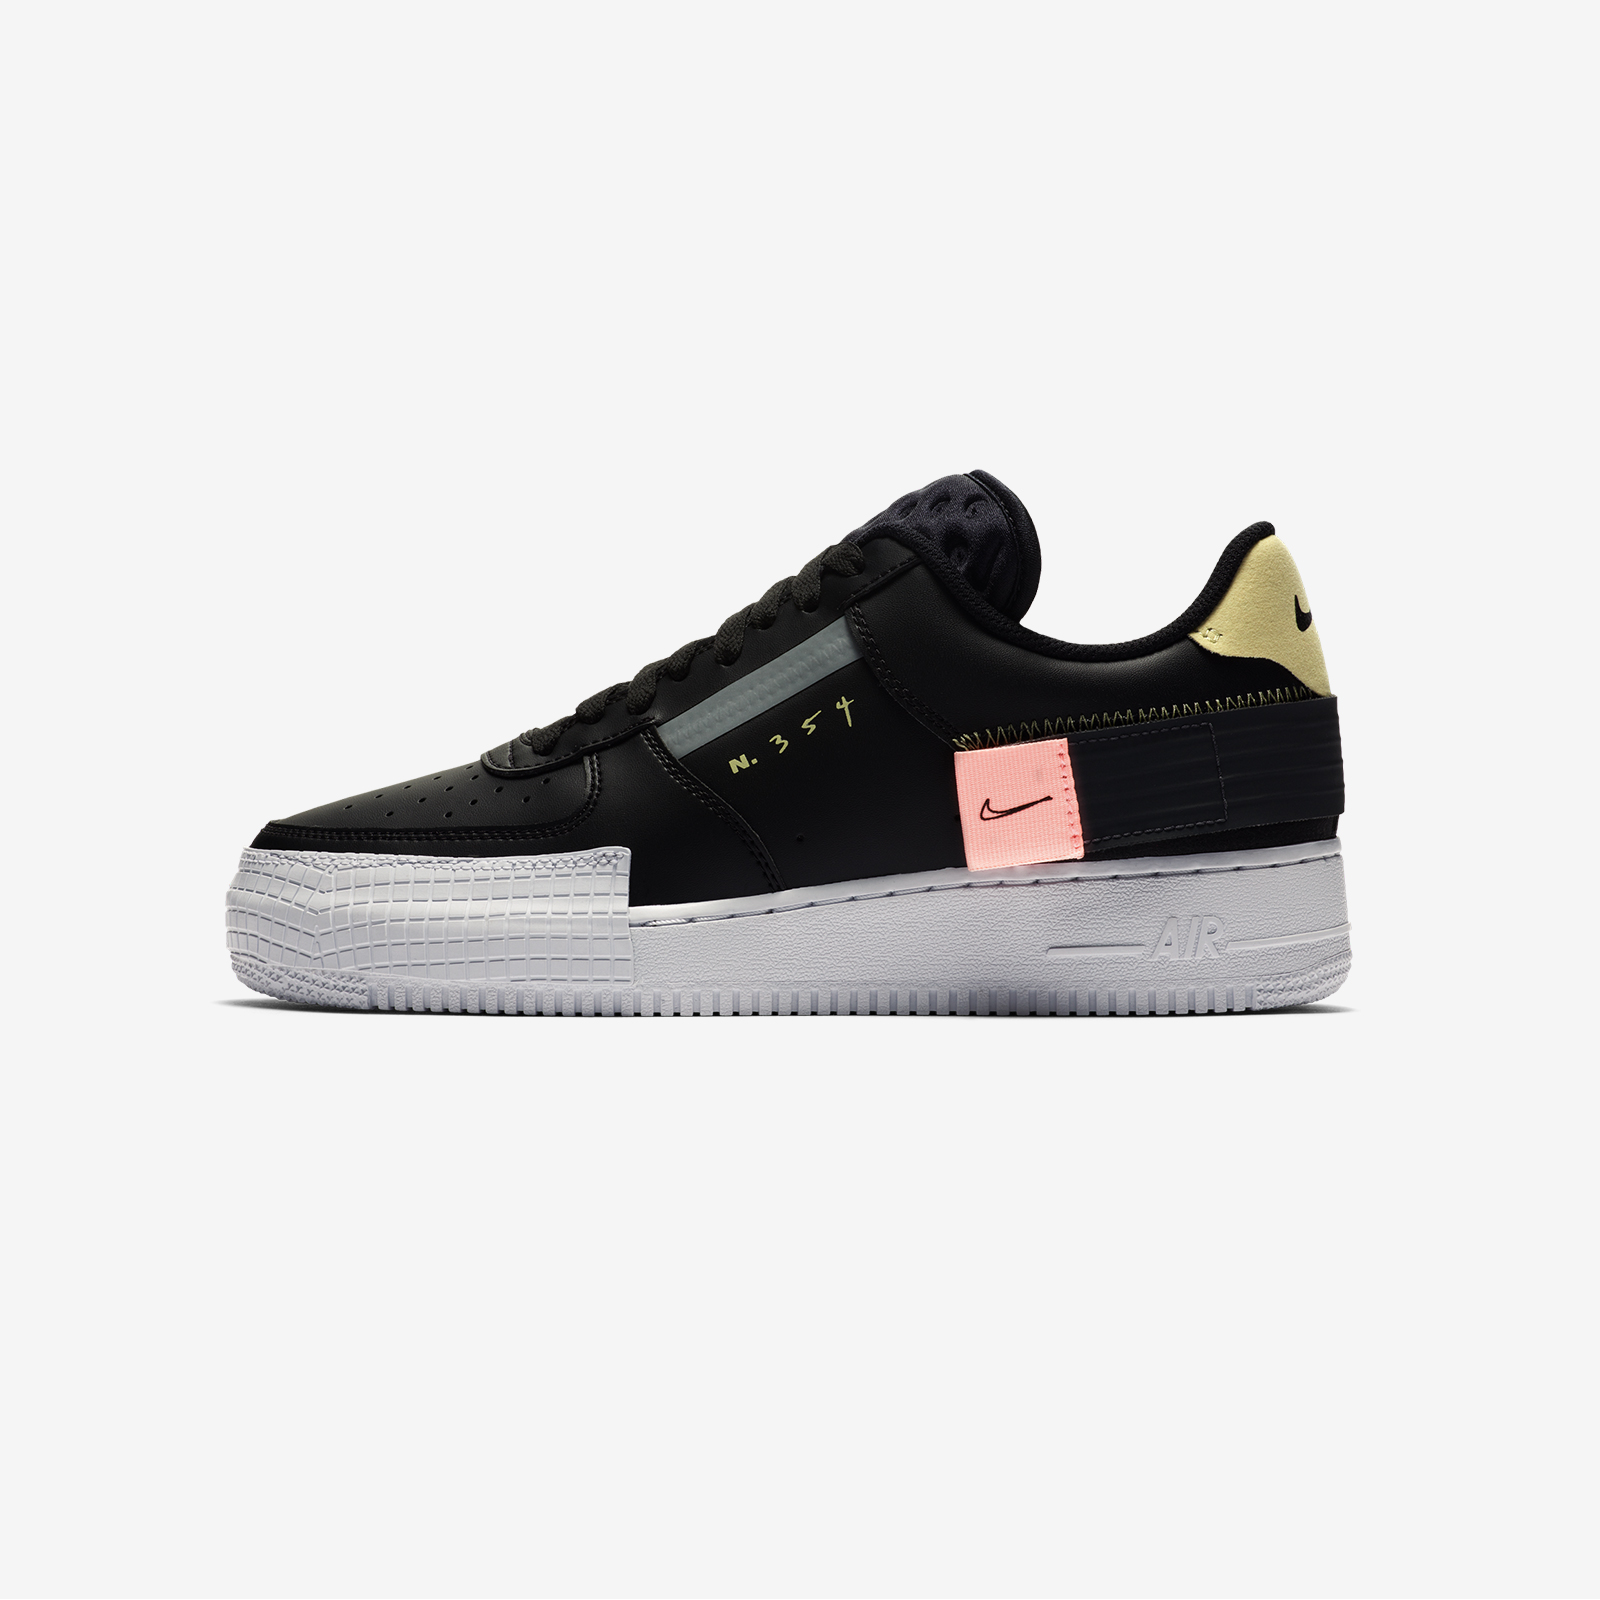 CI0054 001 Nike Air Force 1 Type Black 1